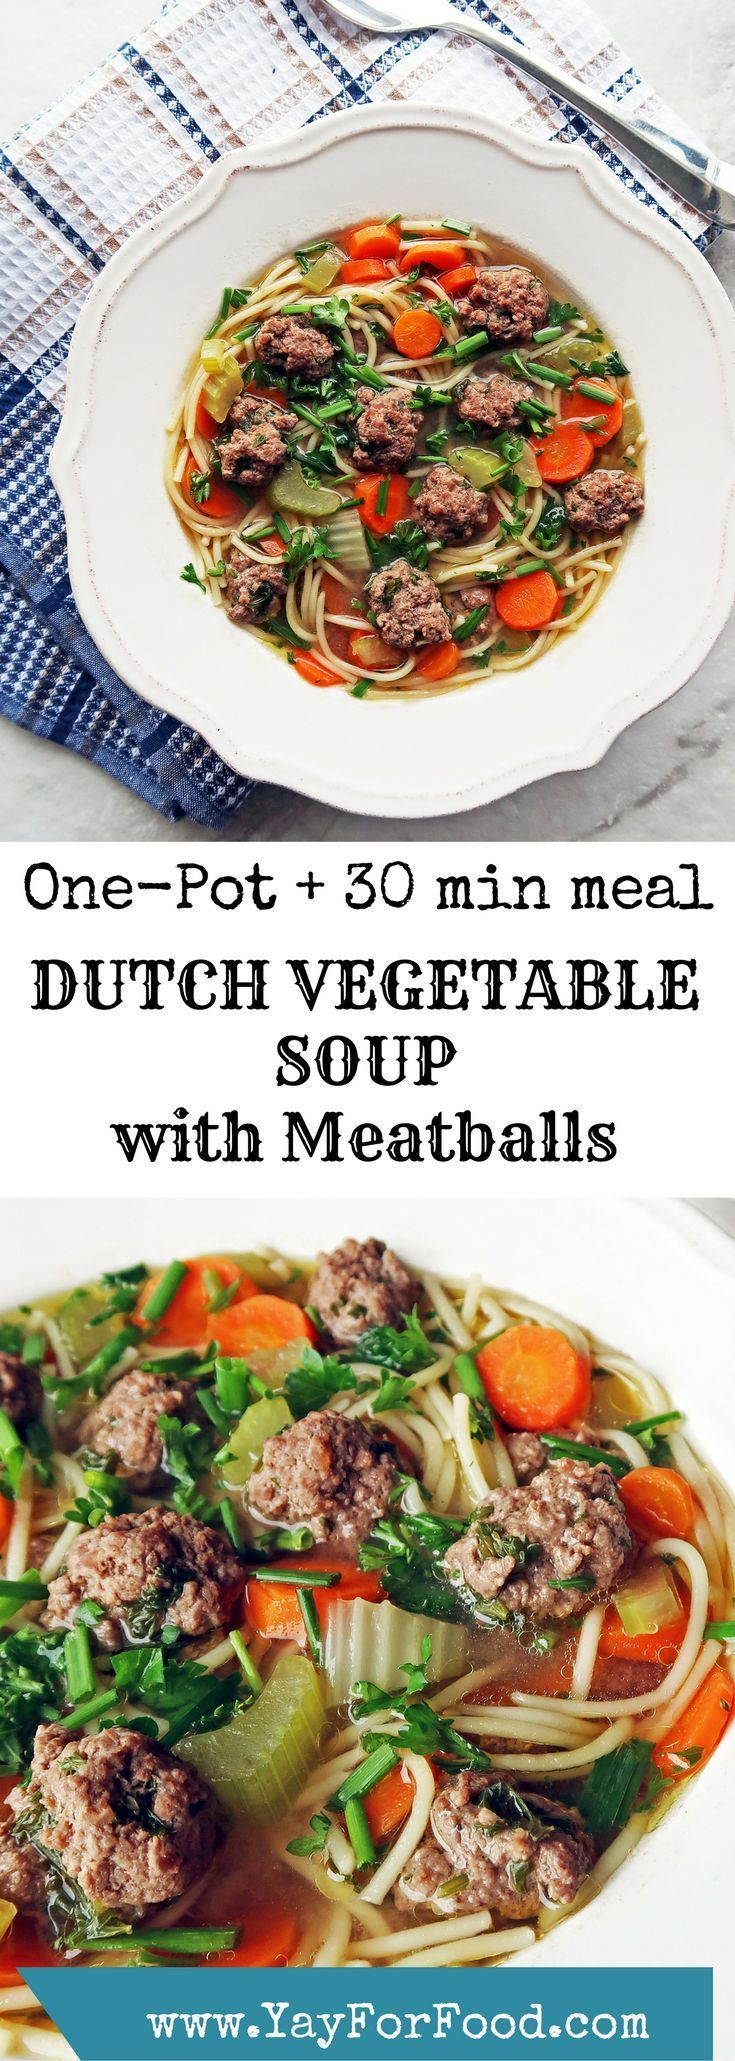 This healthy, simple soup with vegetables, vermicelli pasta, beef meatballs, and fresh herbs is known in Dutch as groentesoep met balletjes and it's easy, delicious, and filling. One-pot and ready in 30 minutes!